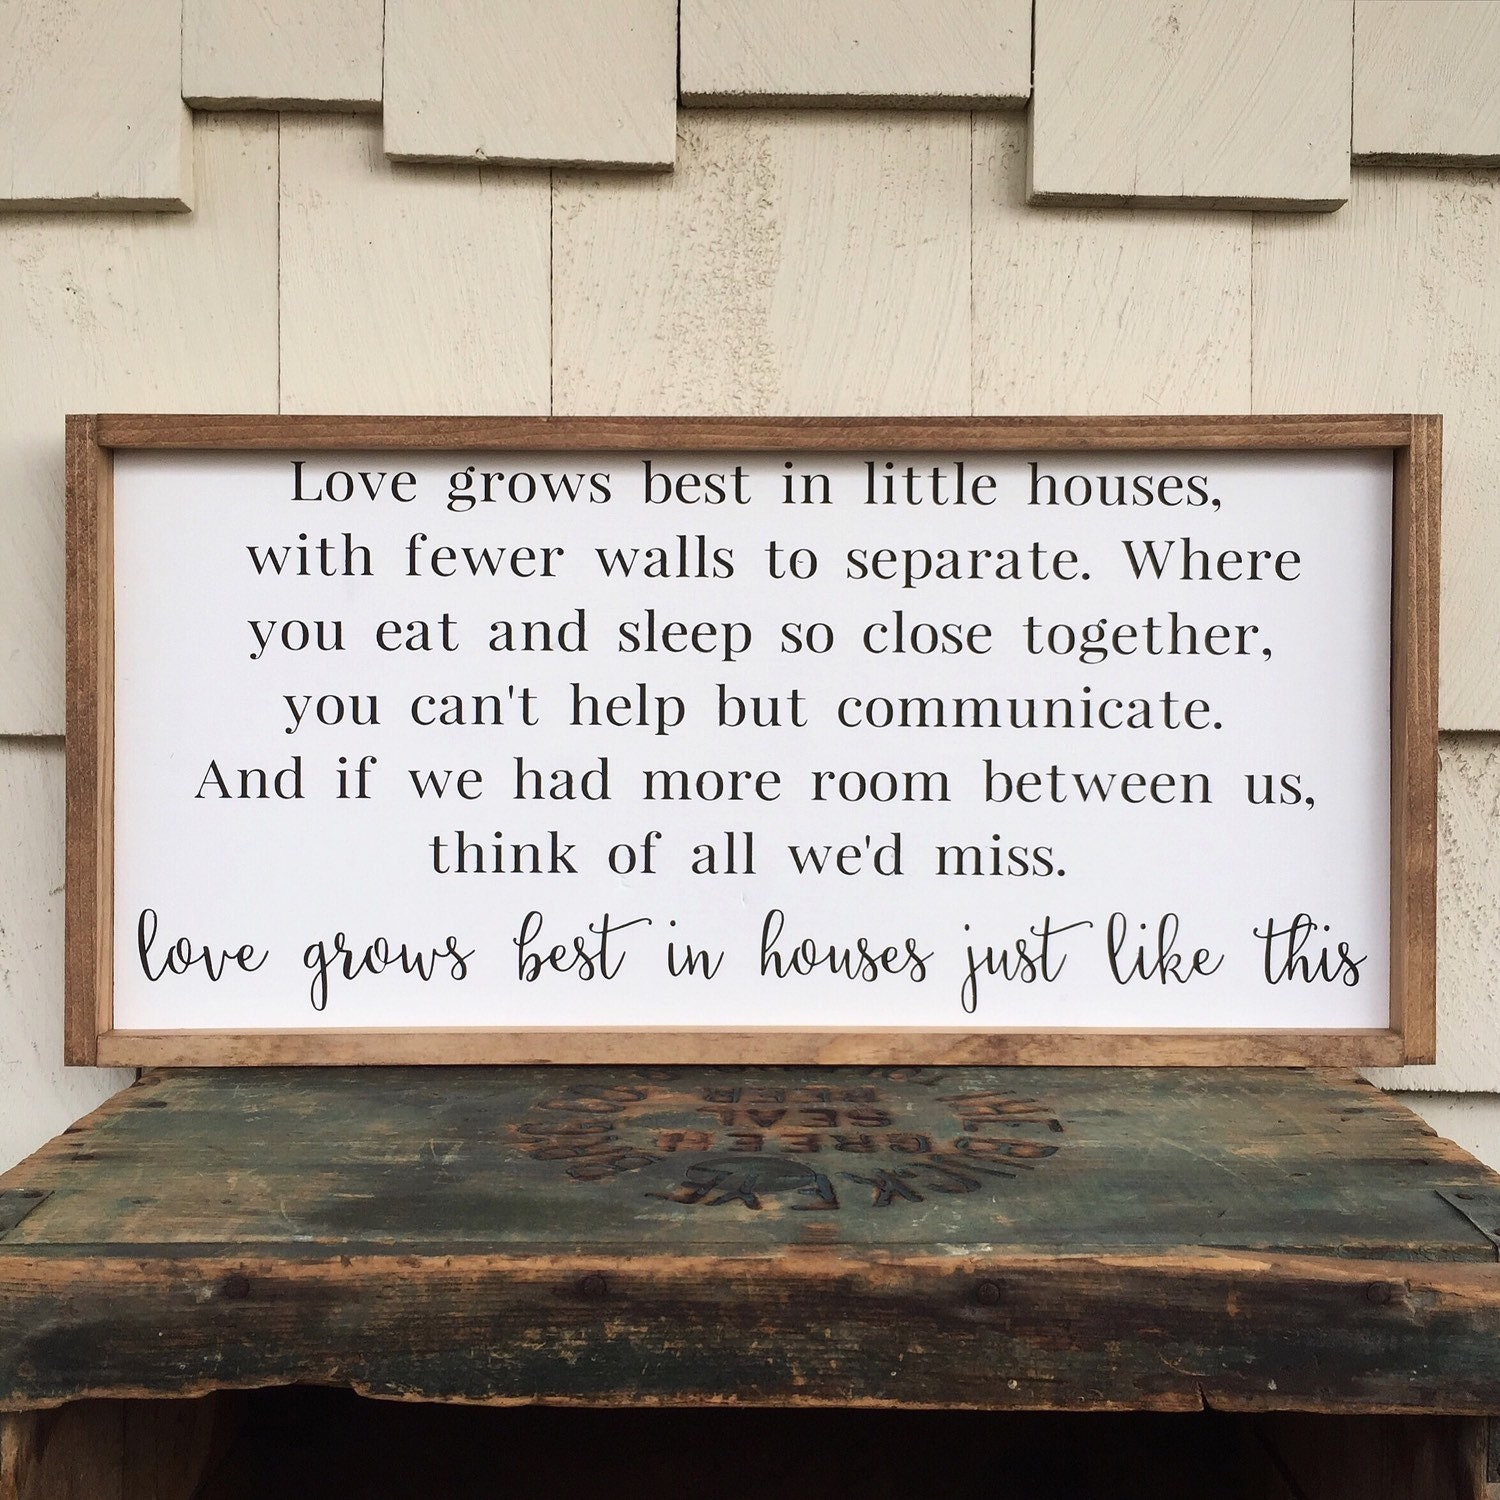 Download Love Grows Best in Little Houses Framed Wood Sign Houses Just